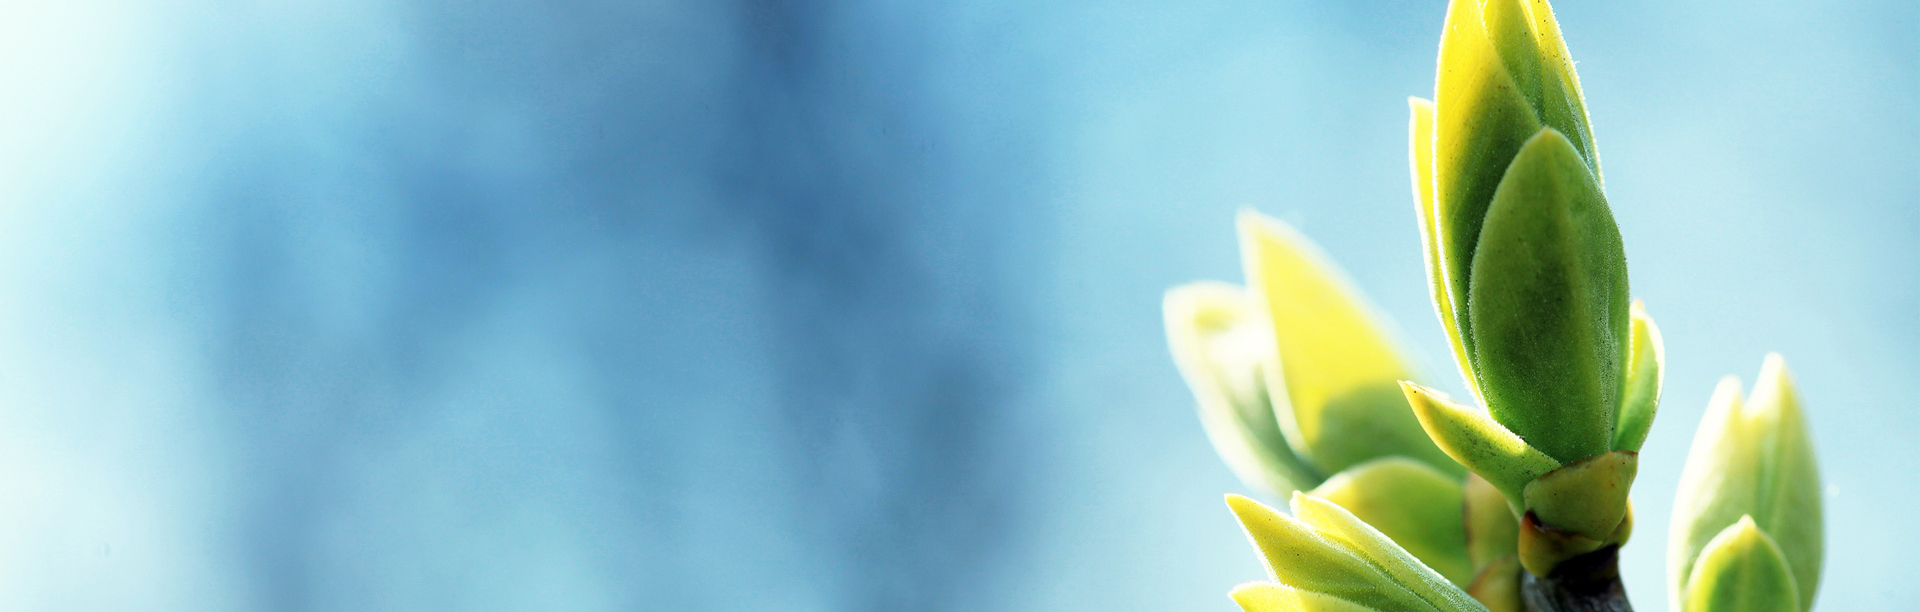 spring_green_background_04